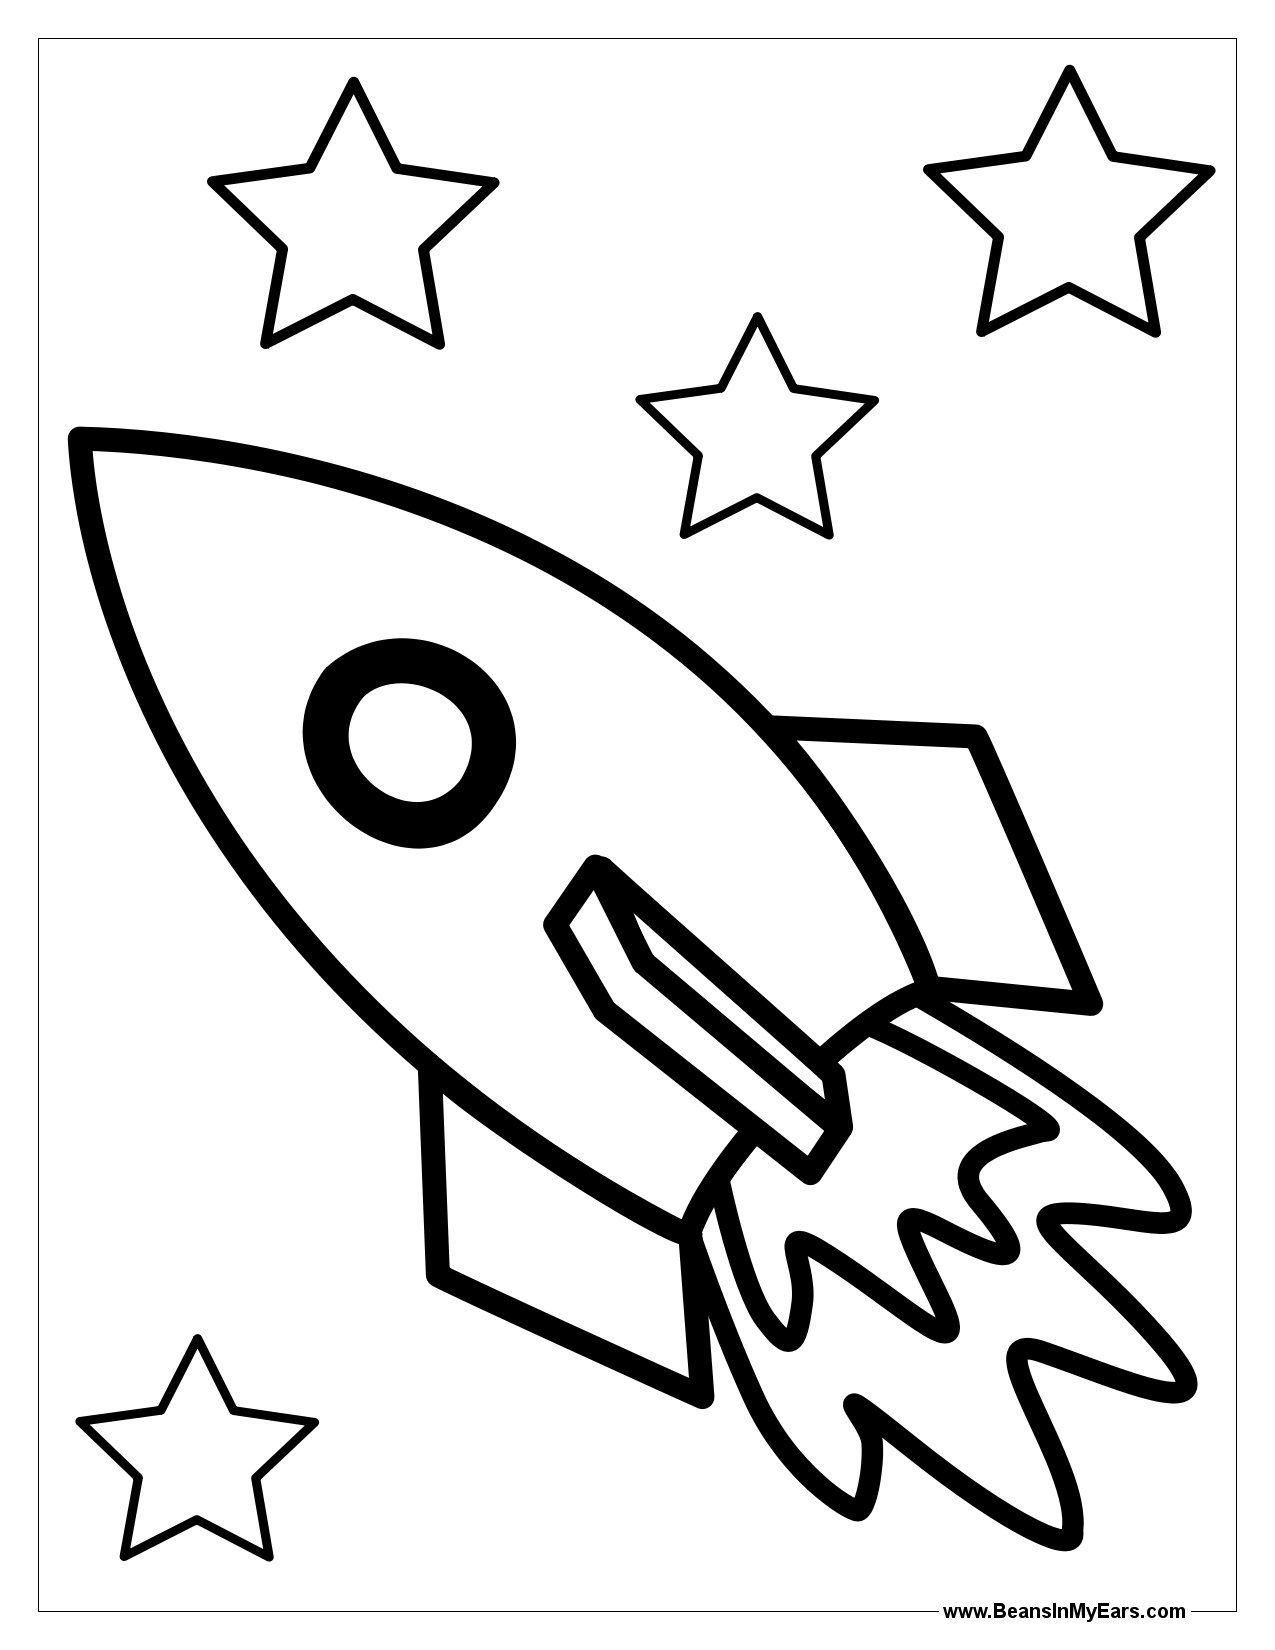 Printable Coloring Coloring Sheets Rocket Ship Coloring Pages Rocket Ship Space Coloring Pages Rocket Coloring Sheet Easy Coloring Pages